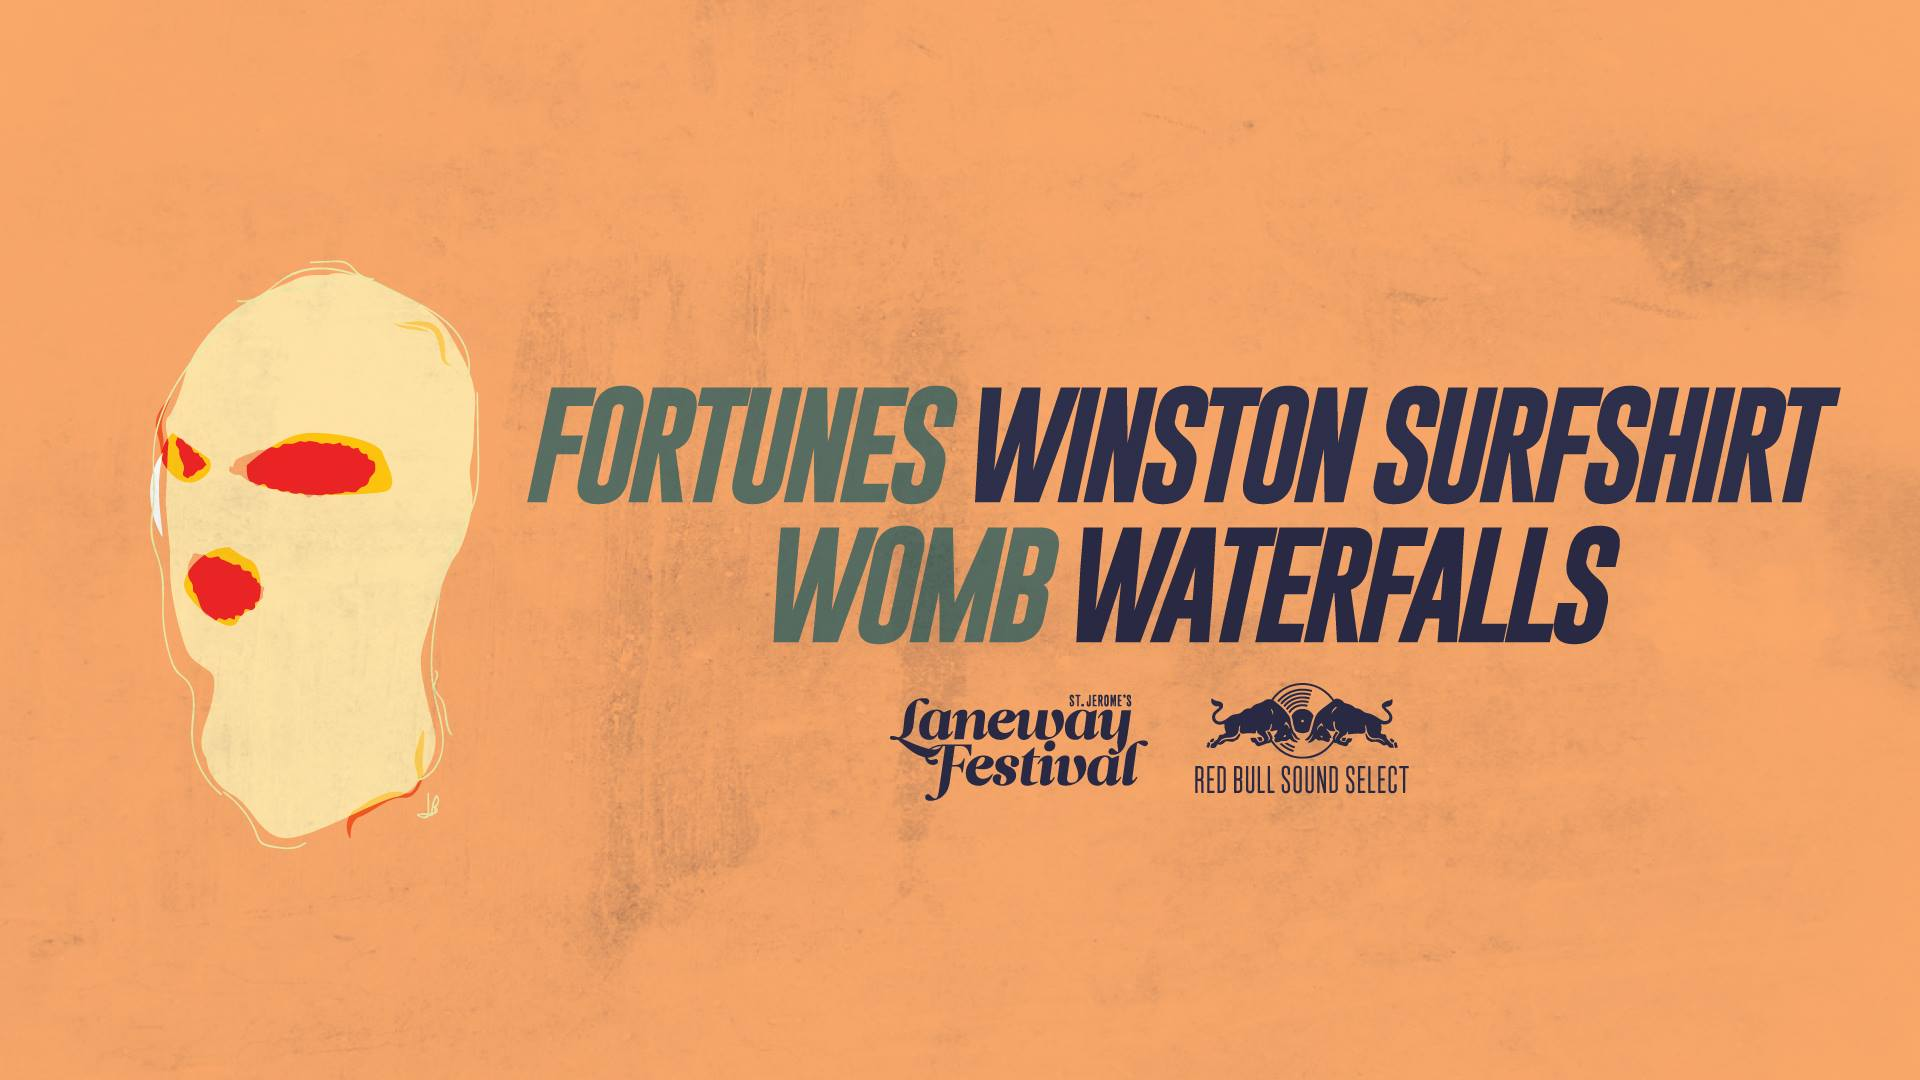 Red Bull Sound Select: Fortunes and Winston Surfshirt